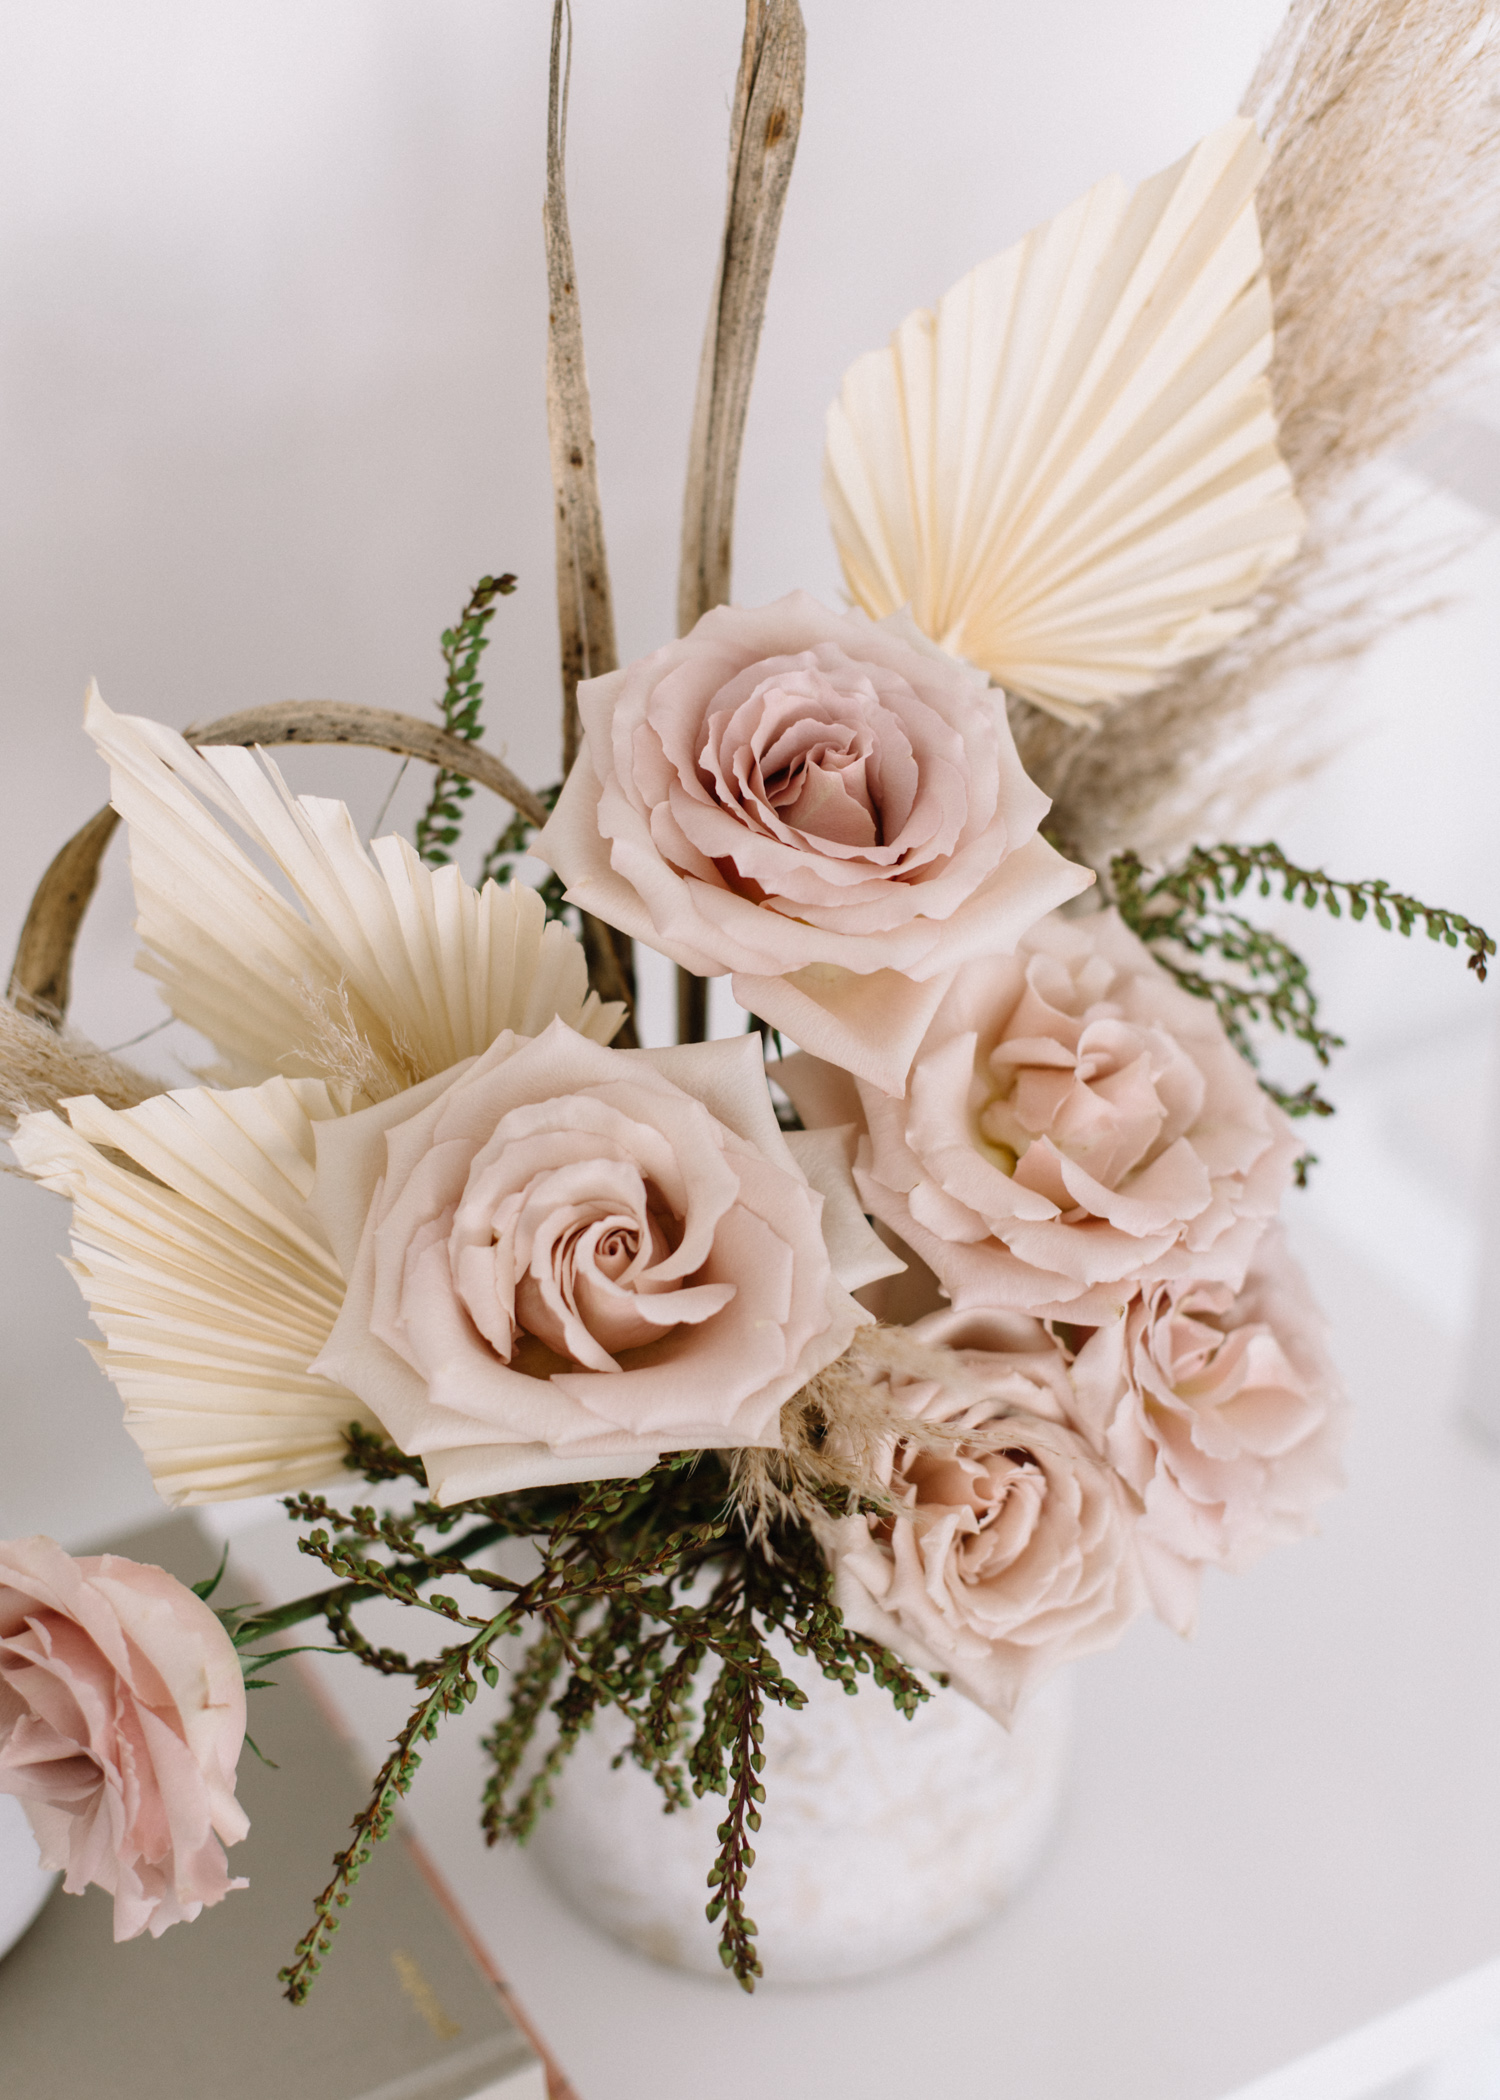 Summer Floral Arrangements || Mix Dried + Real - A Fabulous Fete.jpg